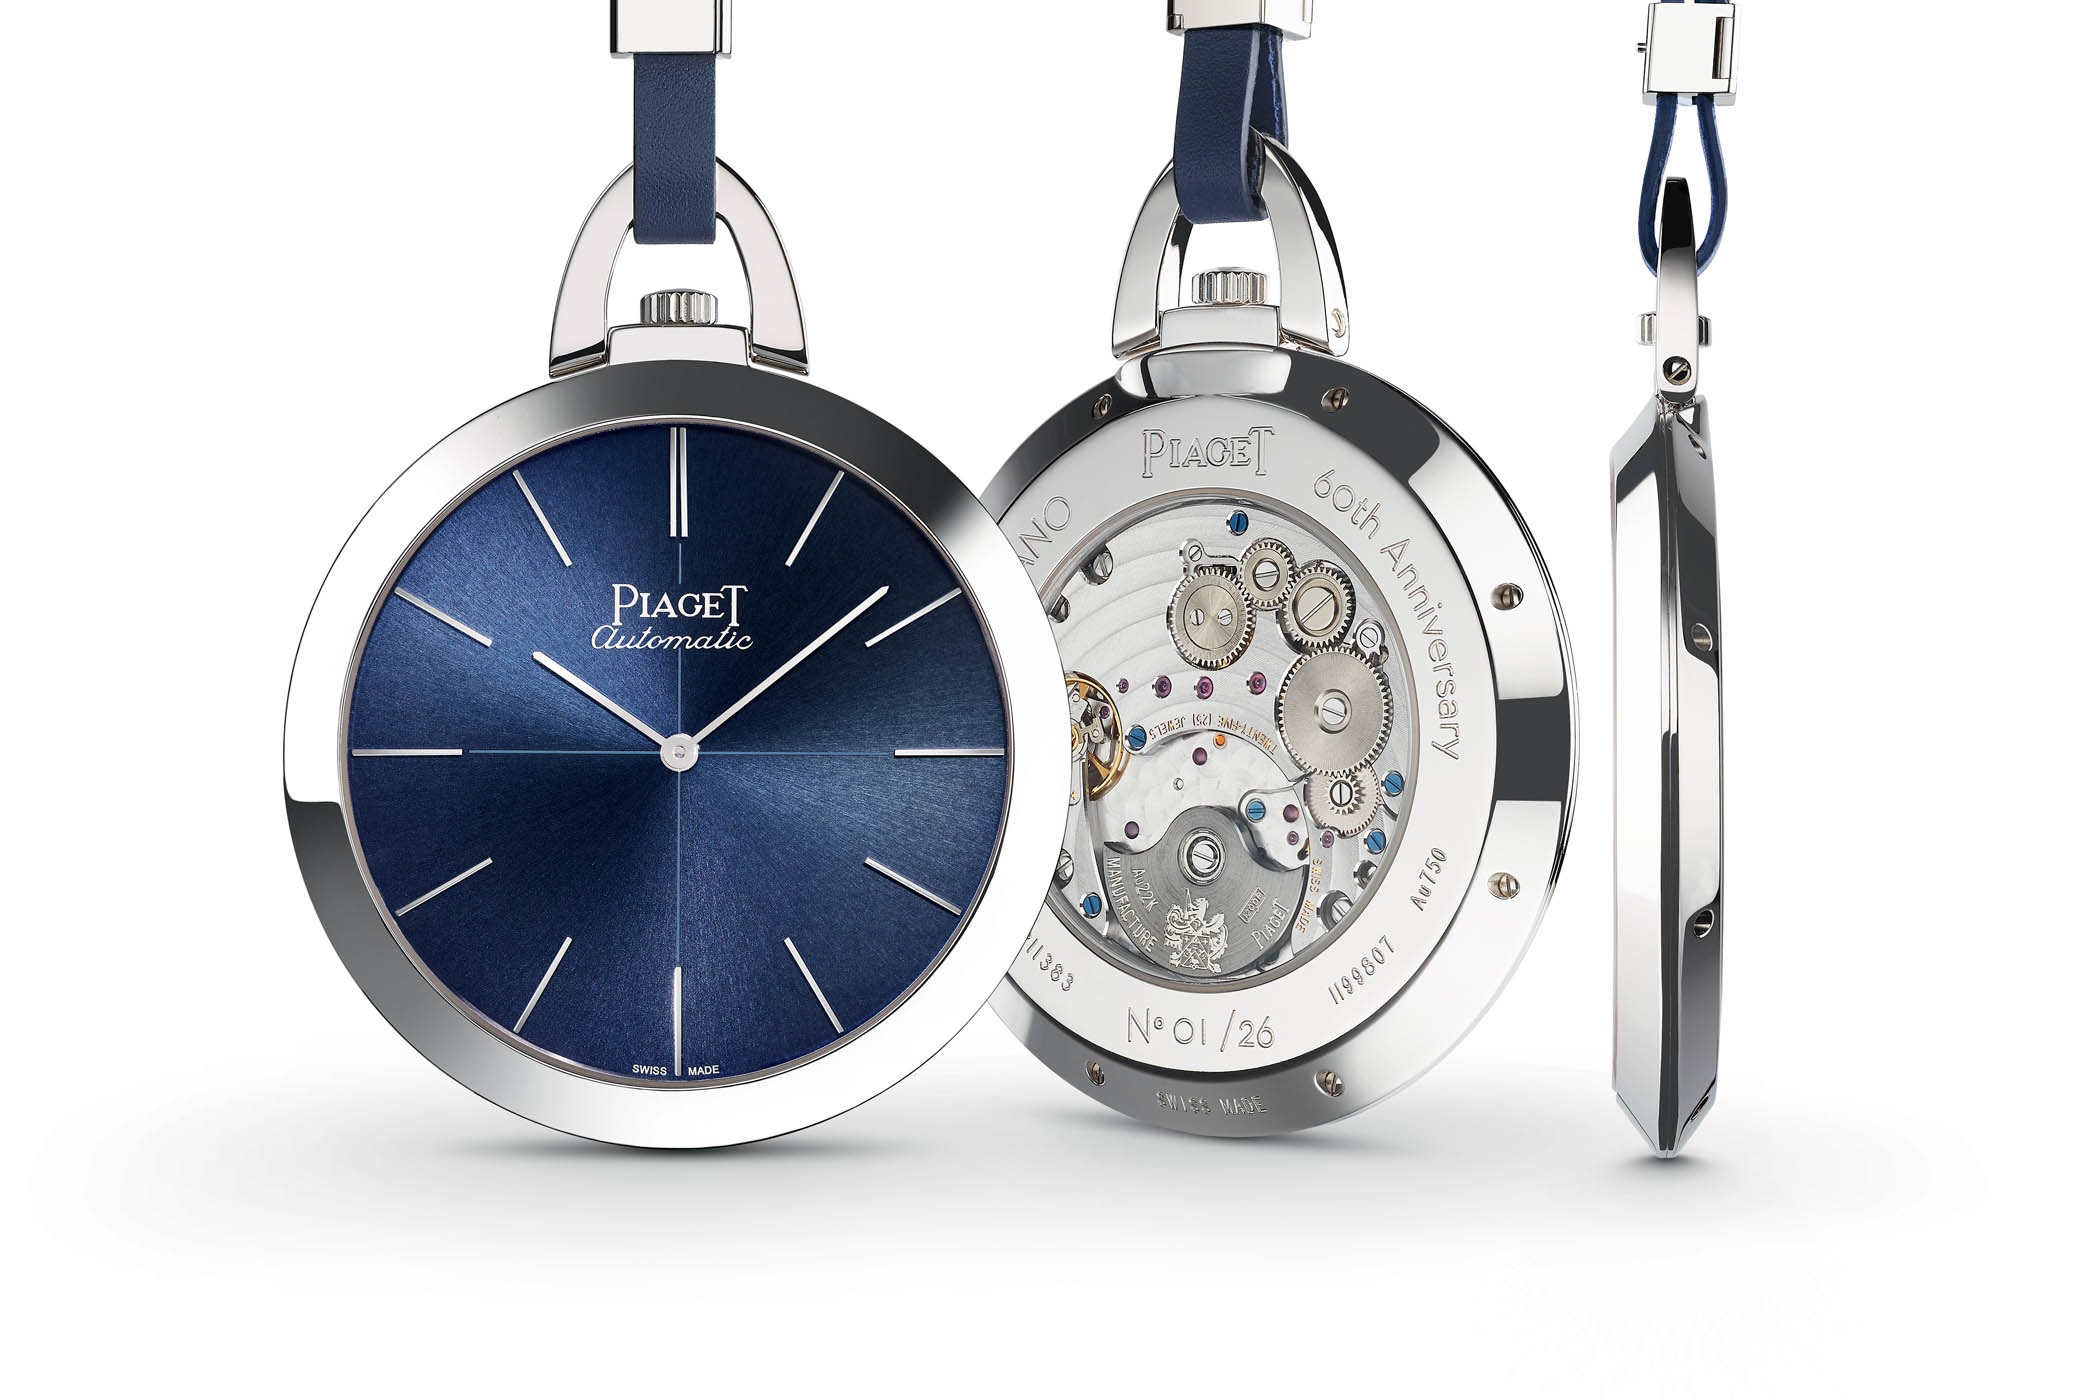 Introducing piaget altiplano 60th anniversary pocket watch for Altiplano watches